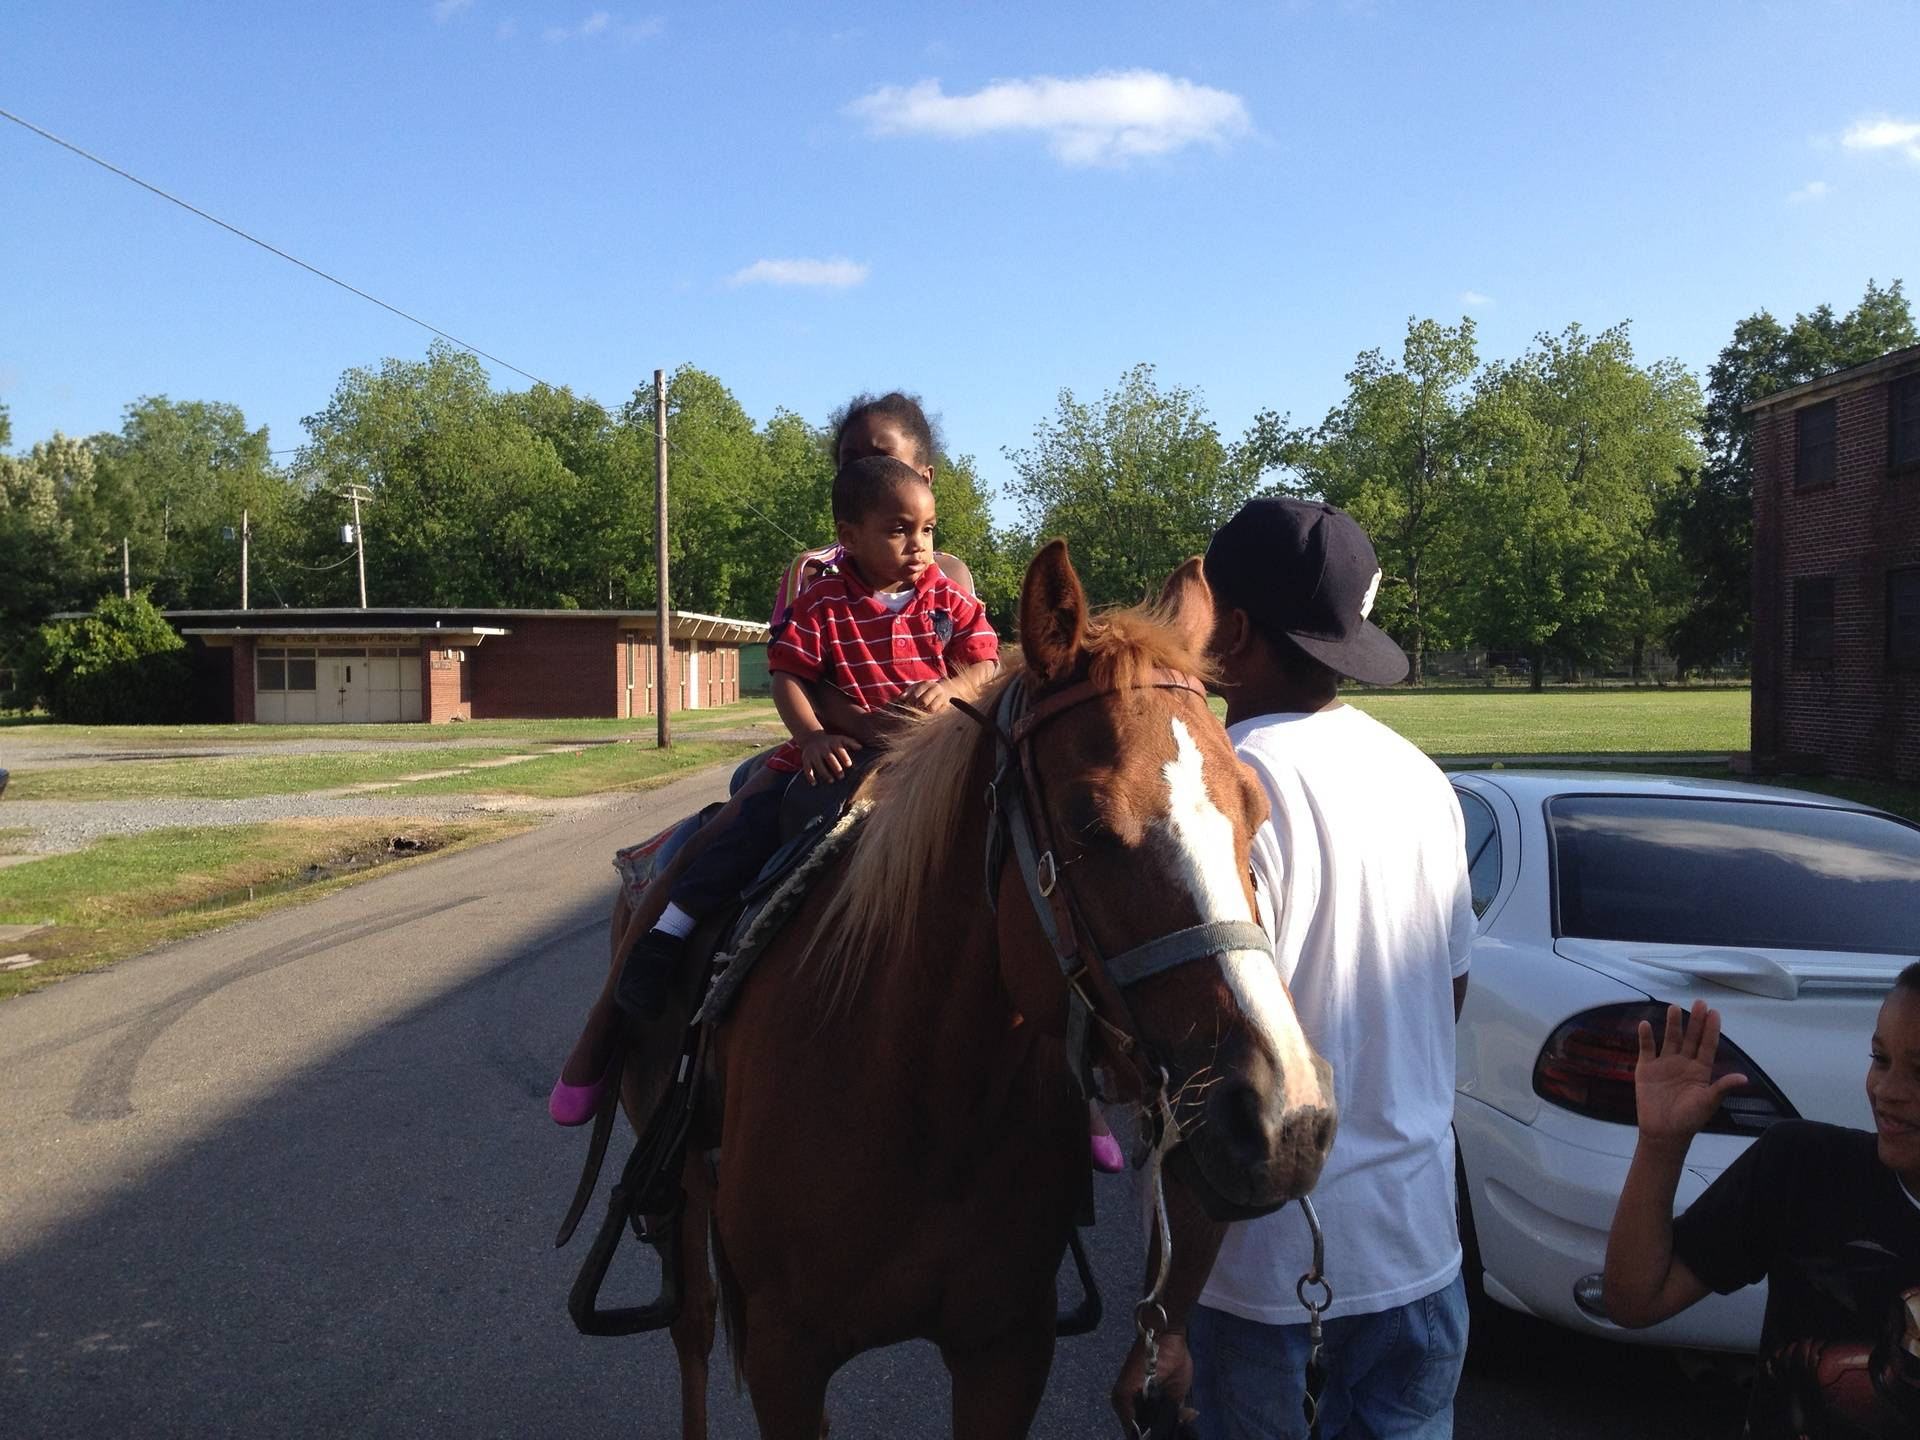 A day on the horses